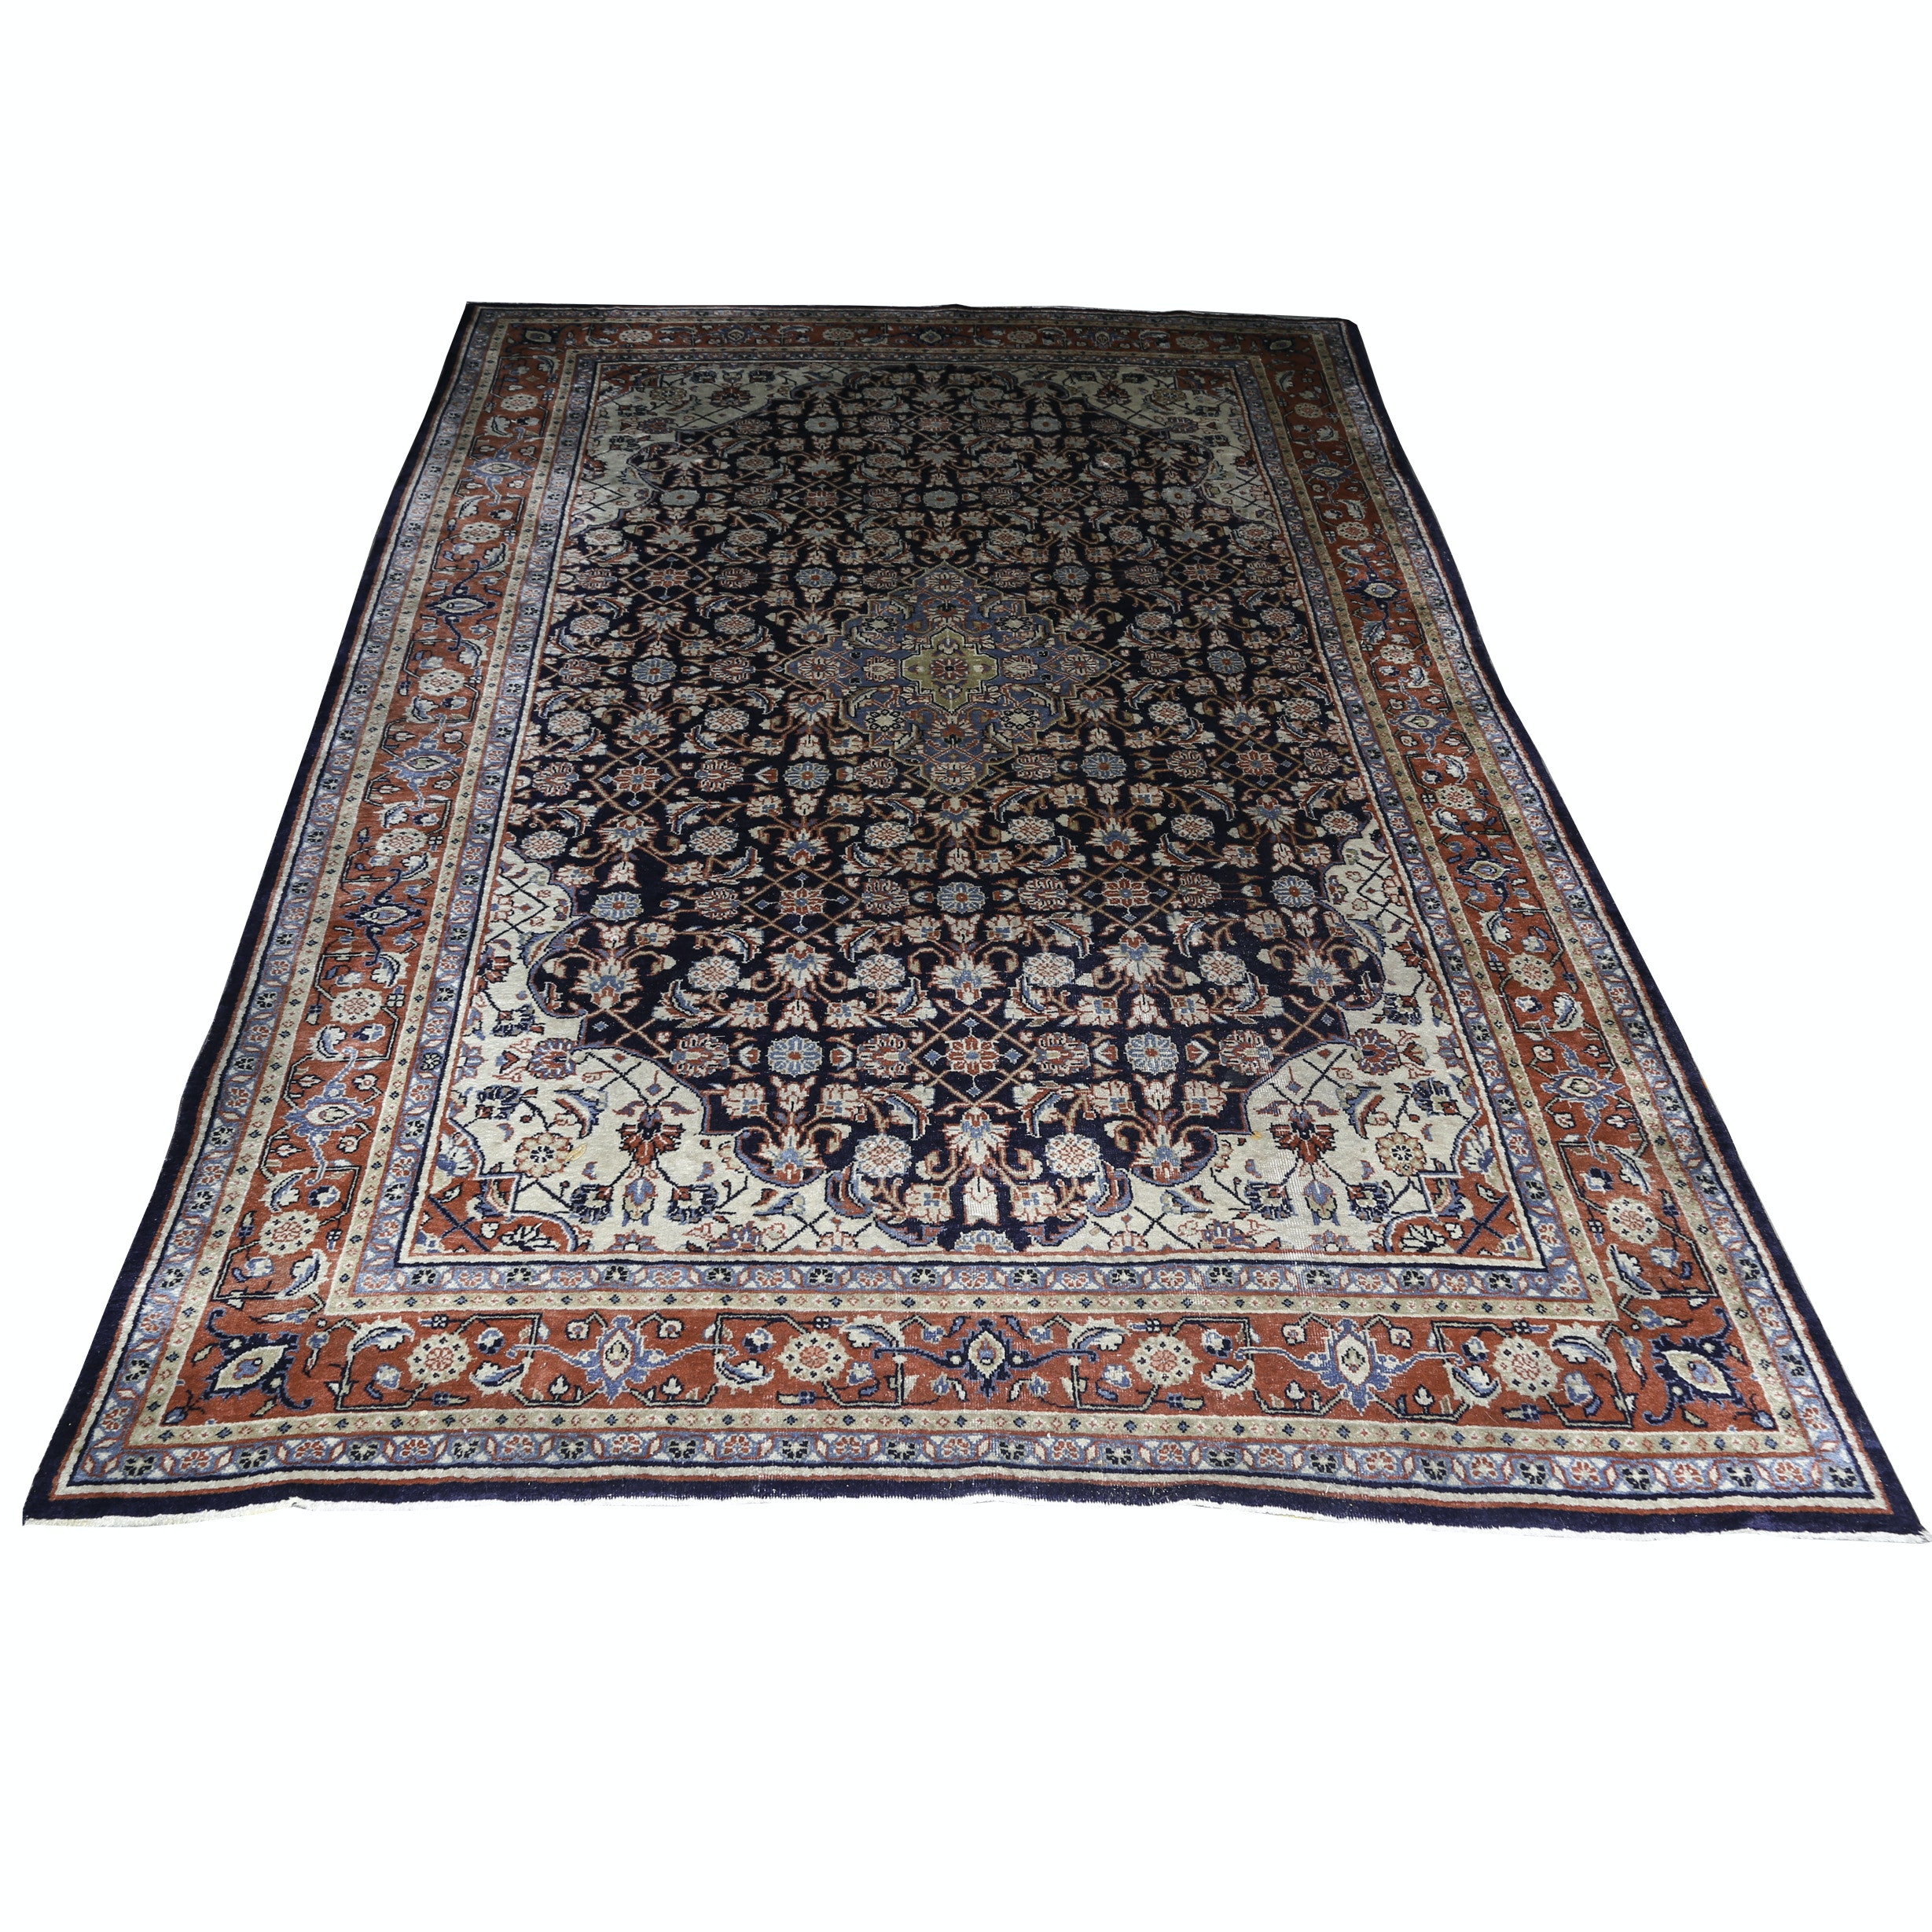 Hand-Knotted Indo-Persian Herati Wool Area Rug